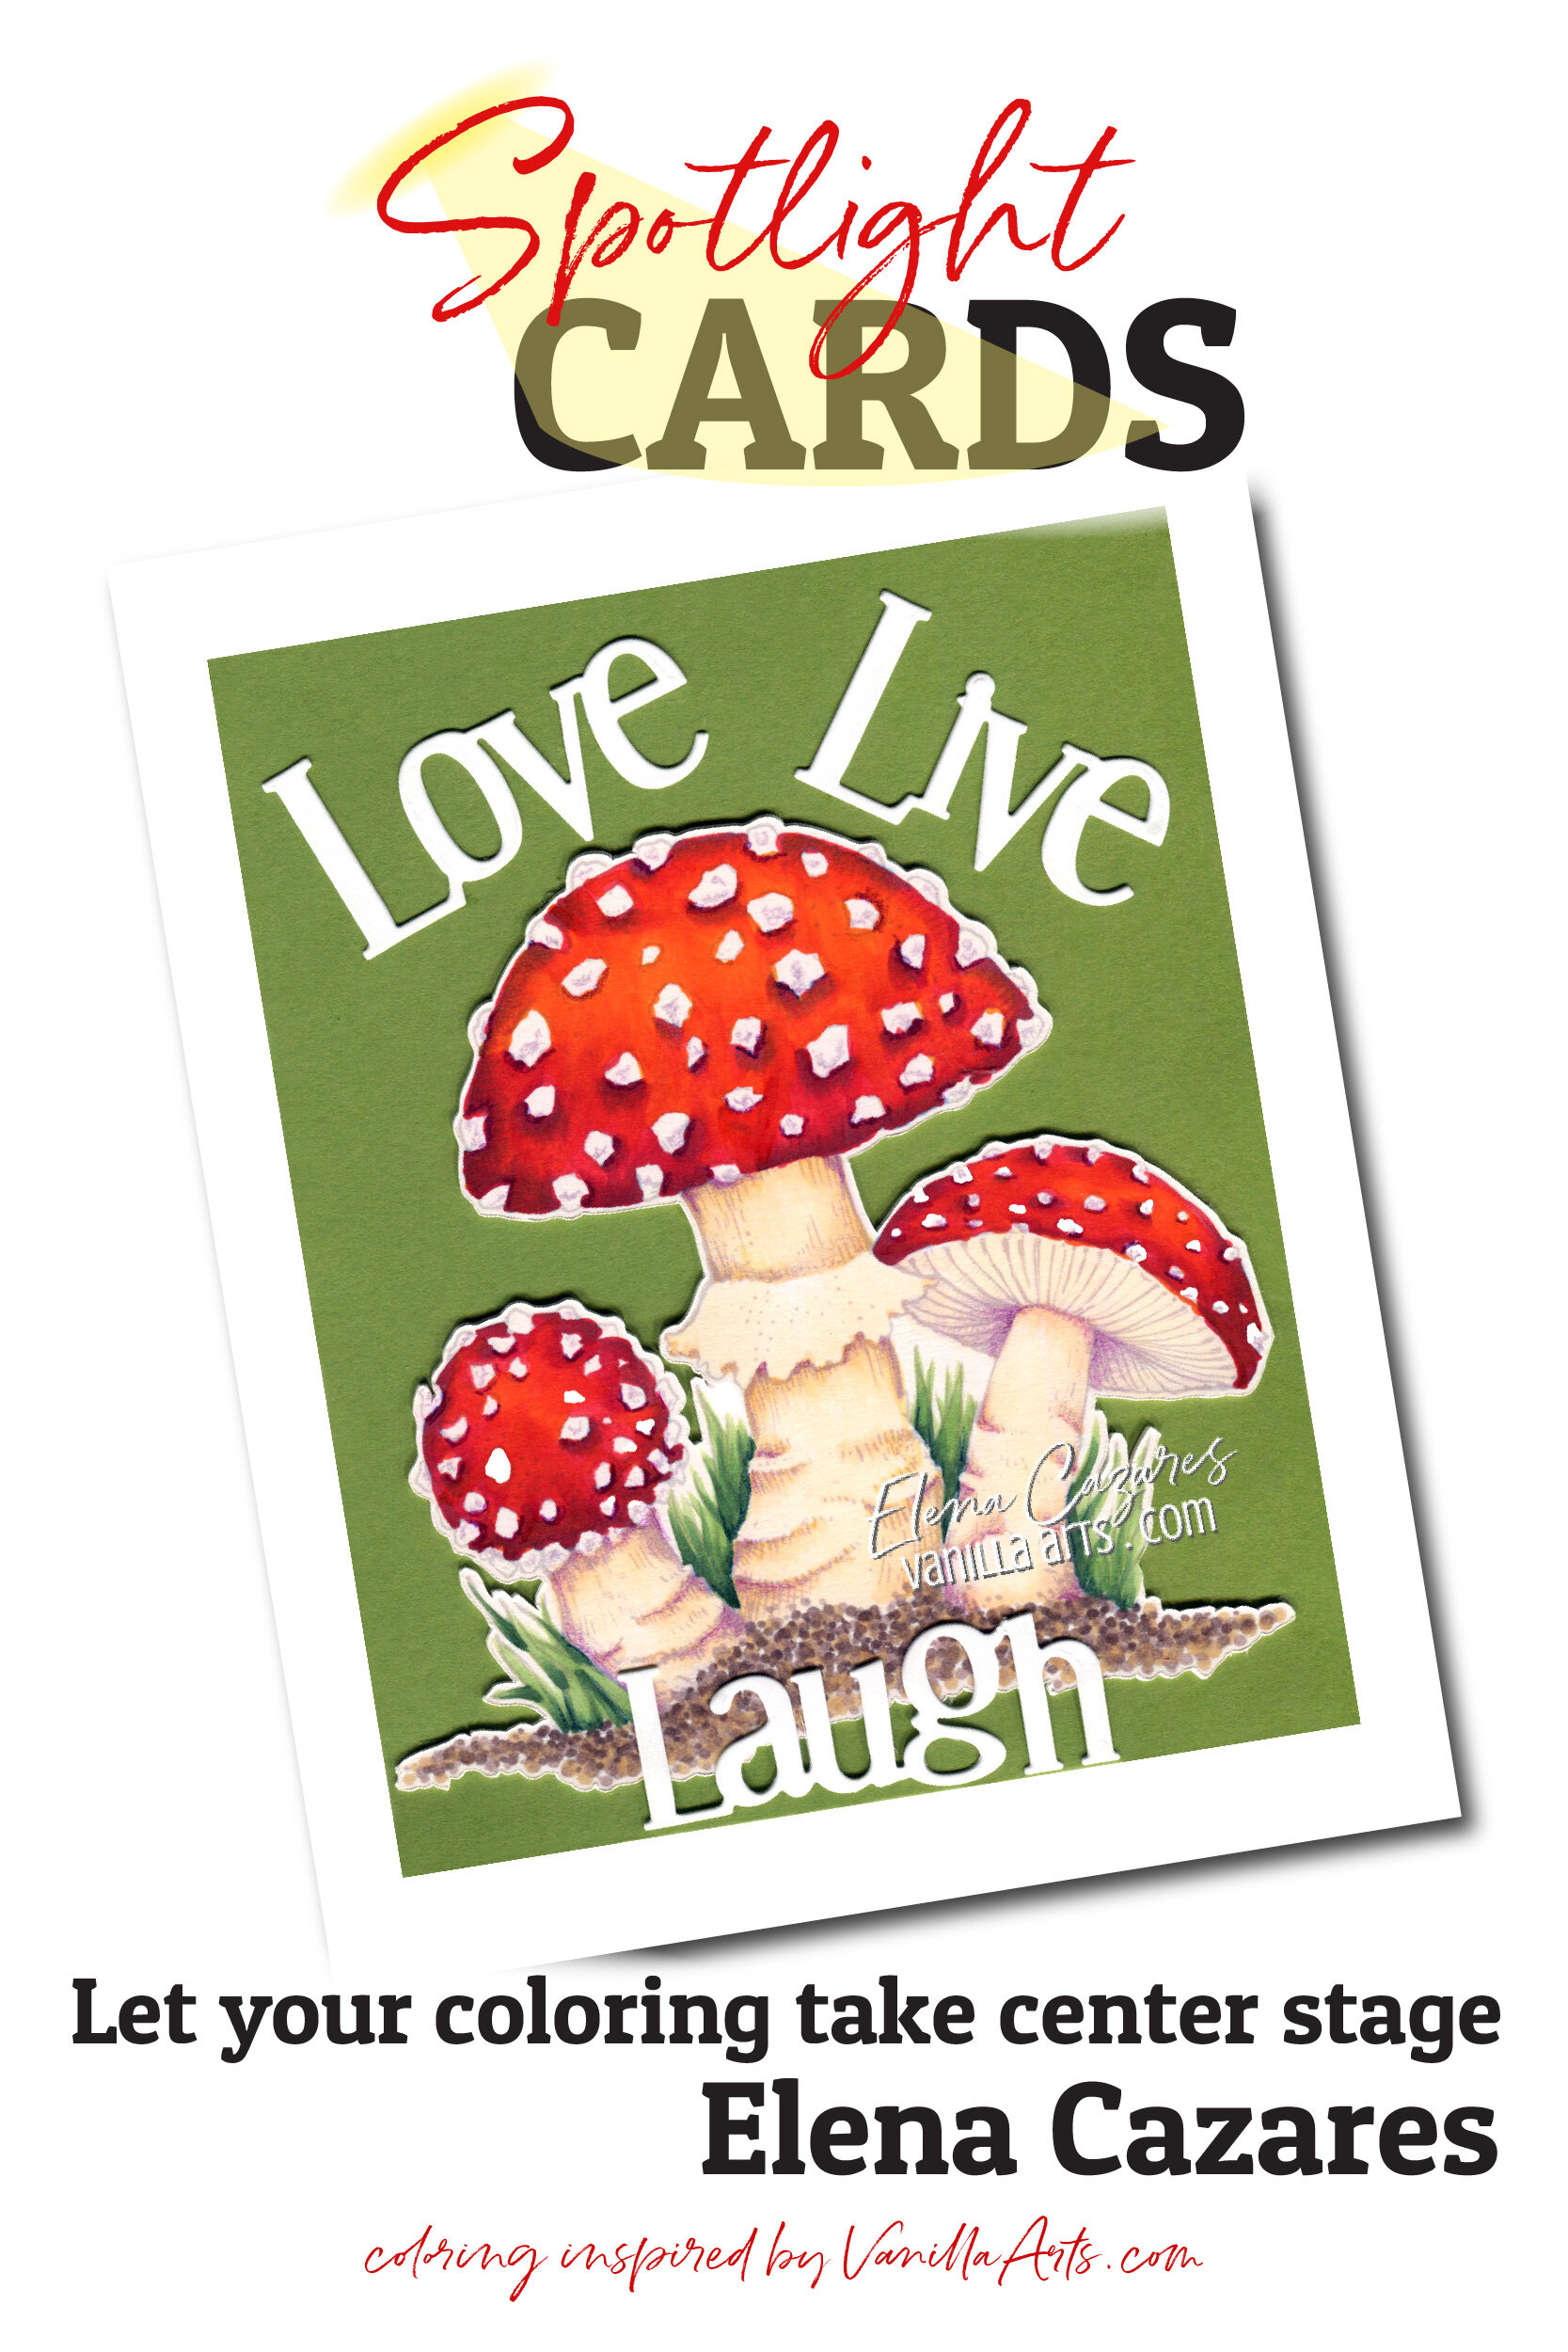 Learn to make cards that do not steal the spotlight from your amazing coloring. Perfect for realistic coloring projects using Copic Markers or colored pencils. Featuring Elena Cazares of Crafts for Paws.  VanillaArts.com   #copicmarker #realisticcoloring #cardmaking